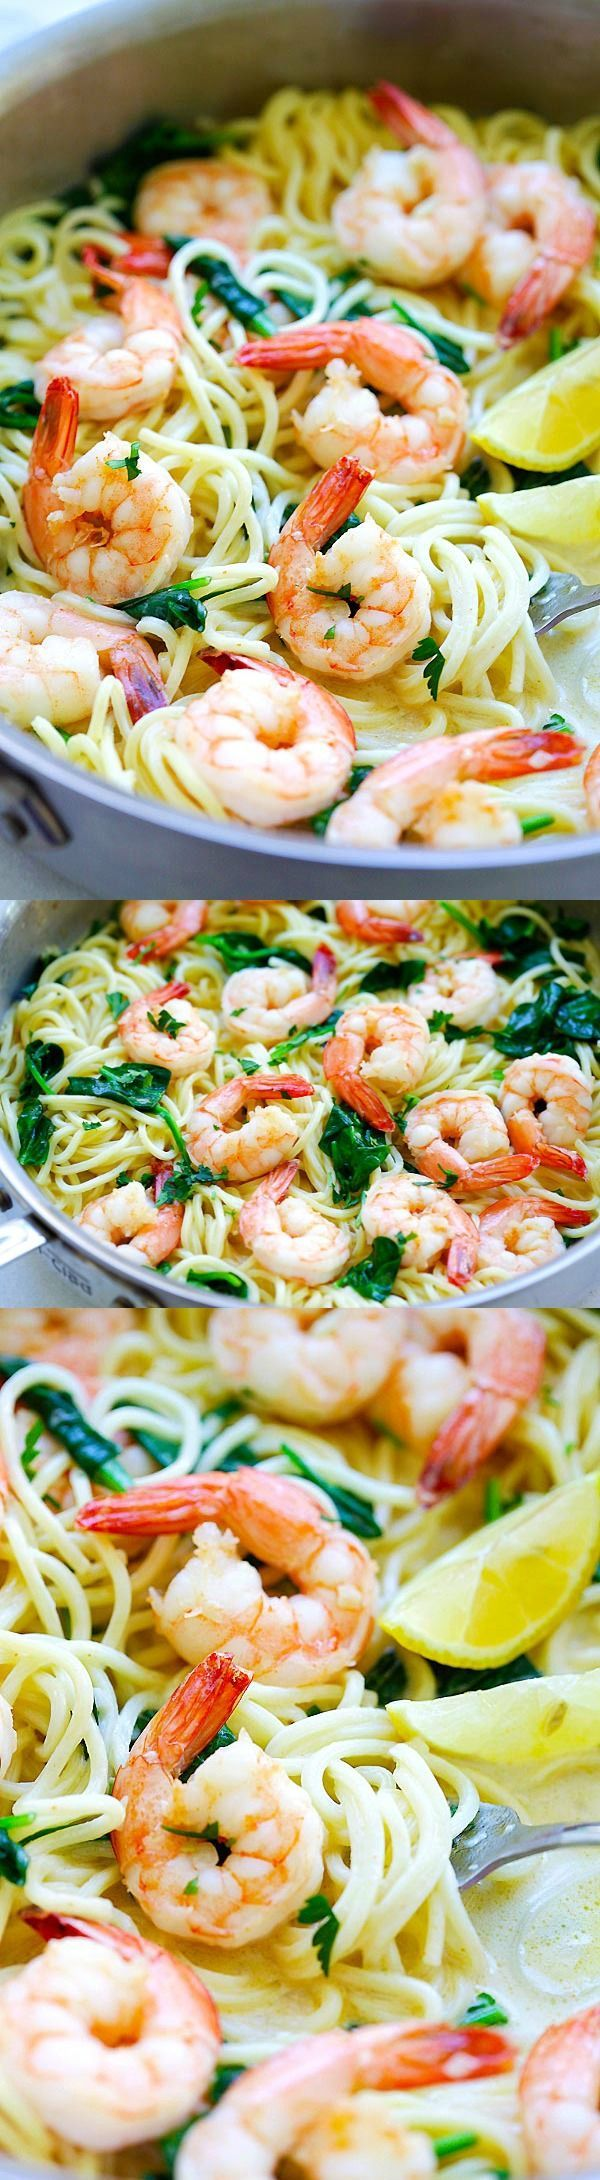 Creamy Shrimp Pasta Creamy Shrimp Pasta – easy pasta recipe with shrimp, spaghetti in a buttery and creamy sauce. Cooked in one pot, dinner is ready in 20 mins   http://rasamalaysia.com